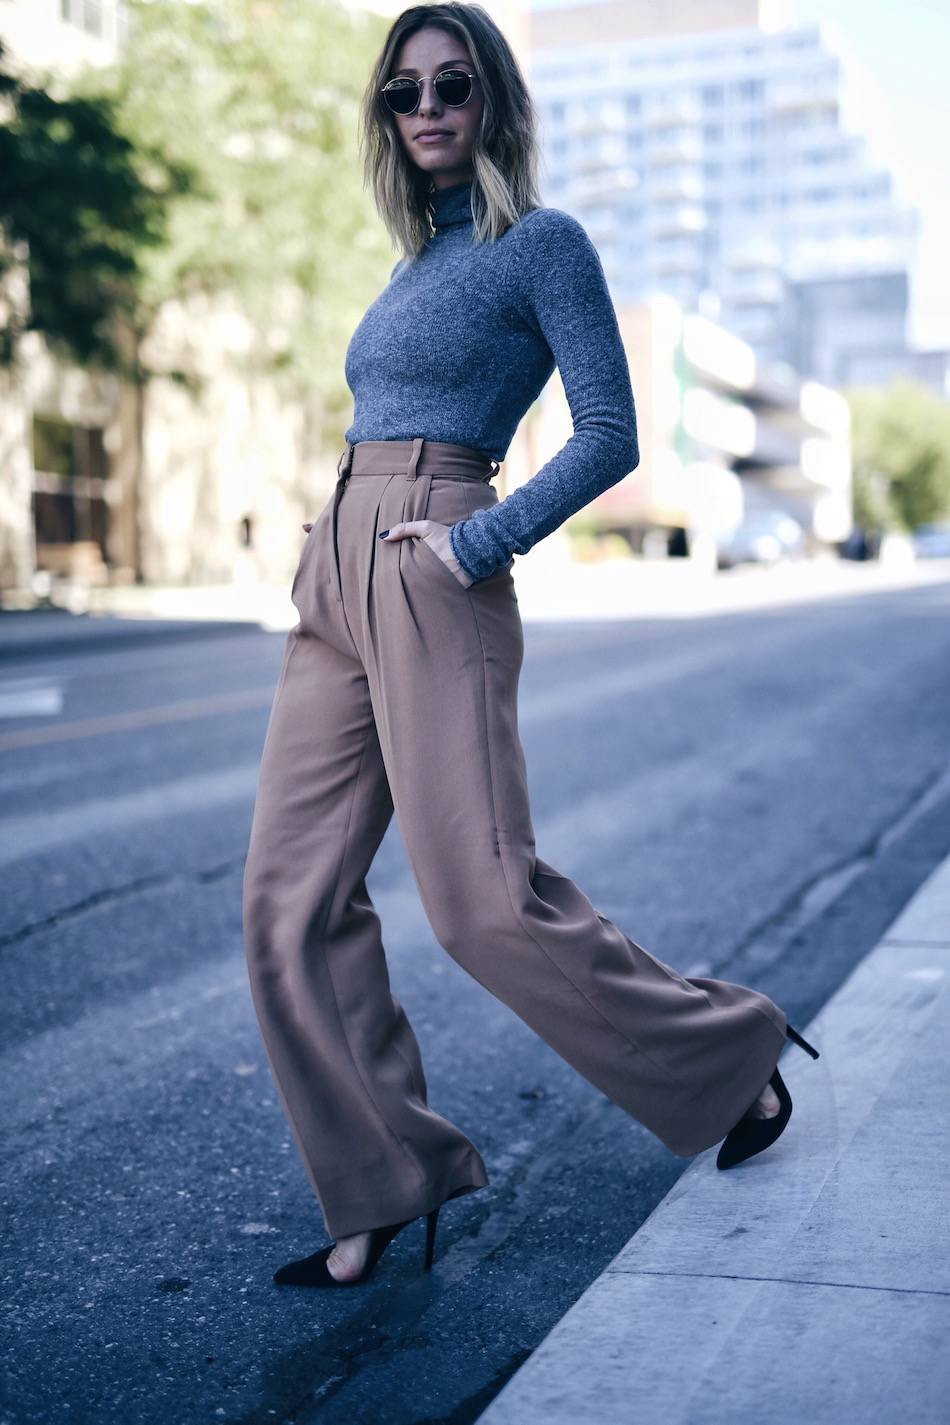 camel trousers with grey turtleneck